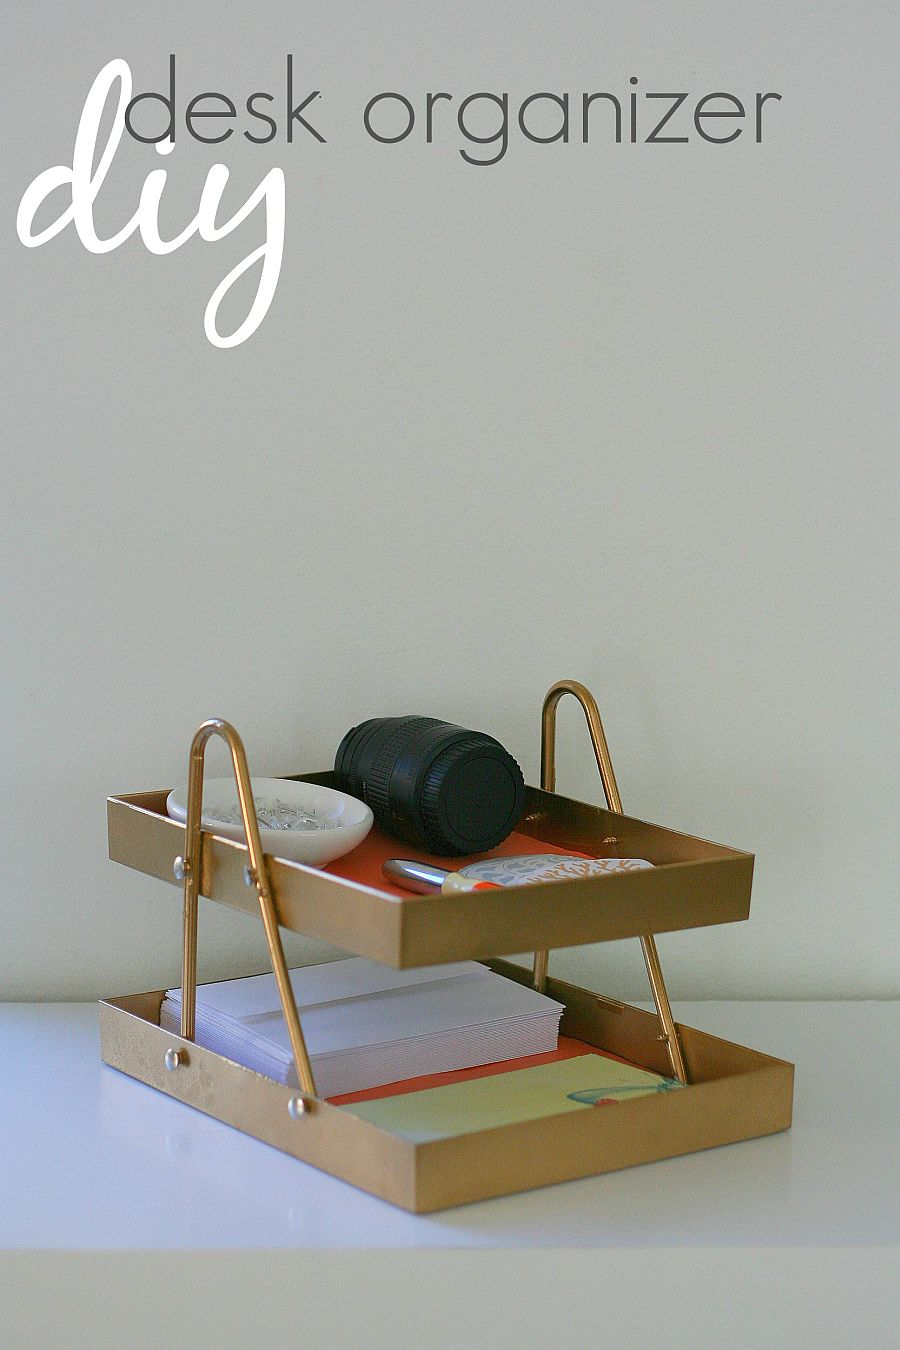 1560528387 480 20 diy desk organizer ideas and projects to try - 20 DIY Desk Organizer Ideas and Projects to Try